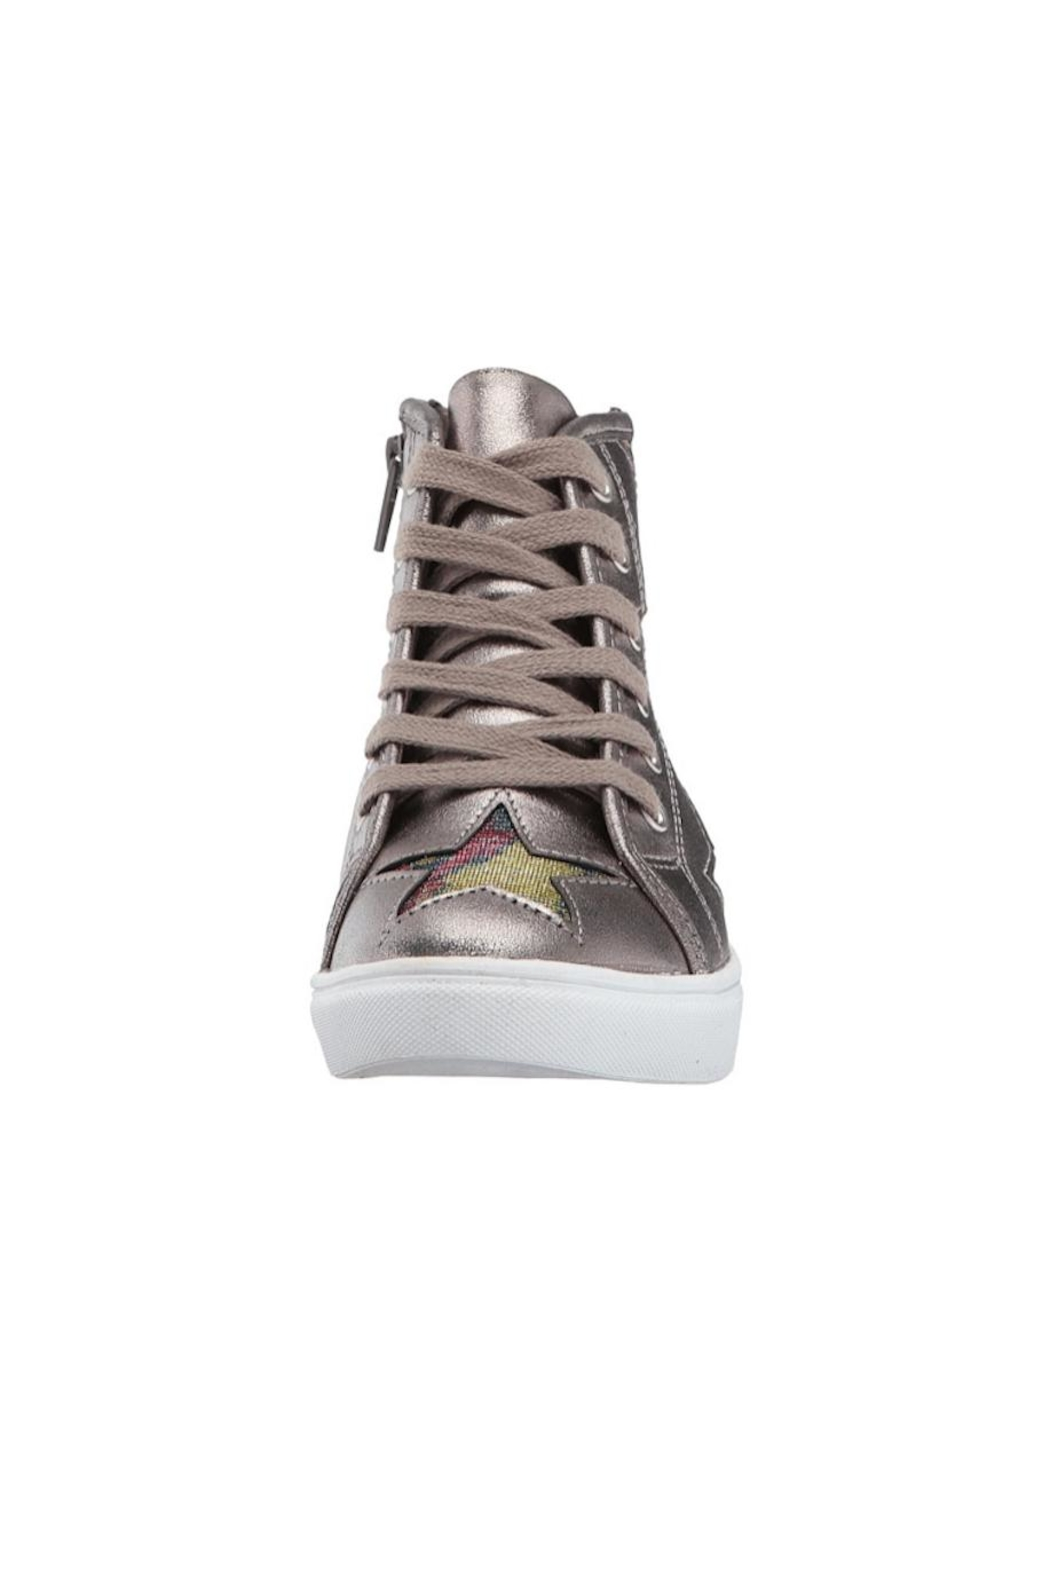 Steve Madden Star Cut-Out Sneaker - Front Full Image